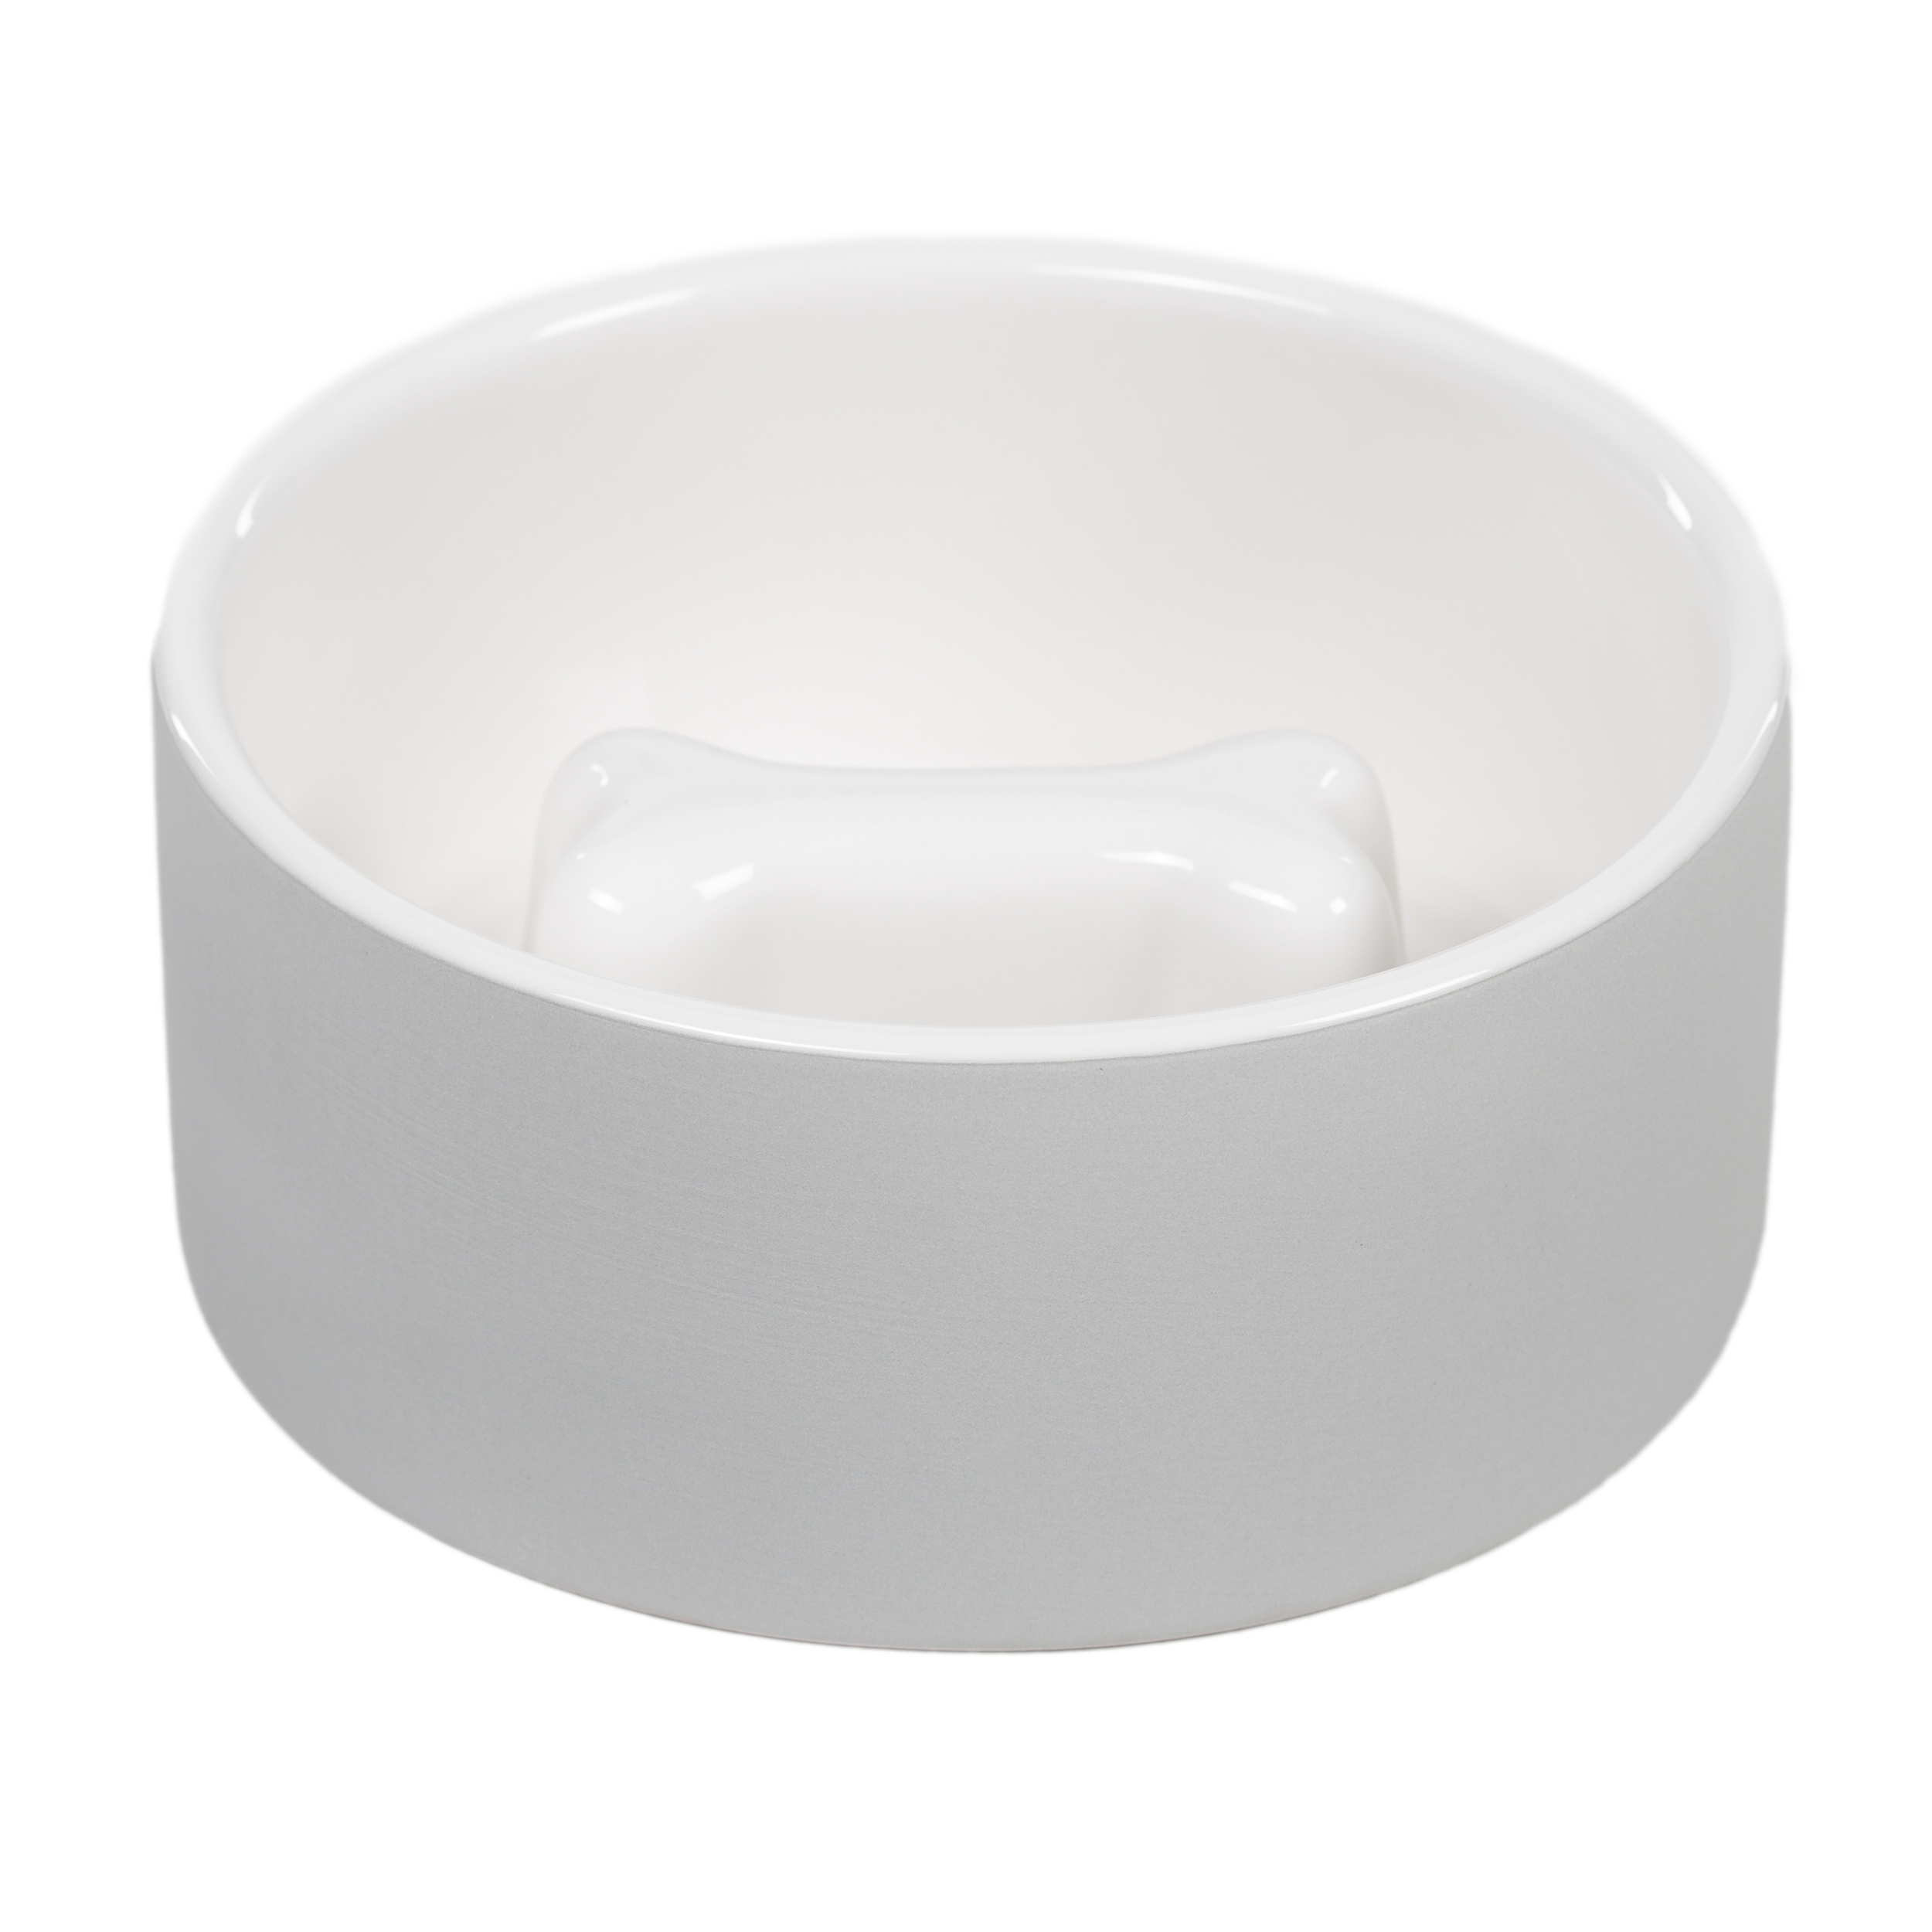 Cooling Bowl - M slow feed Grå